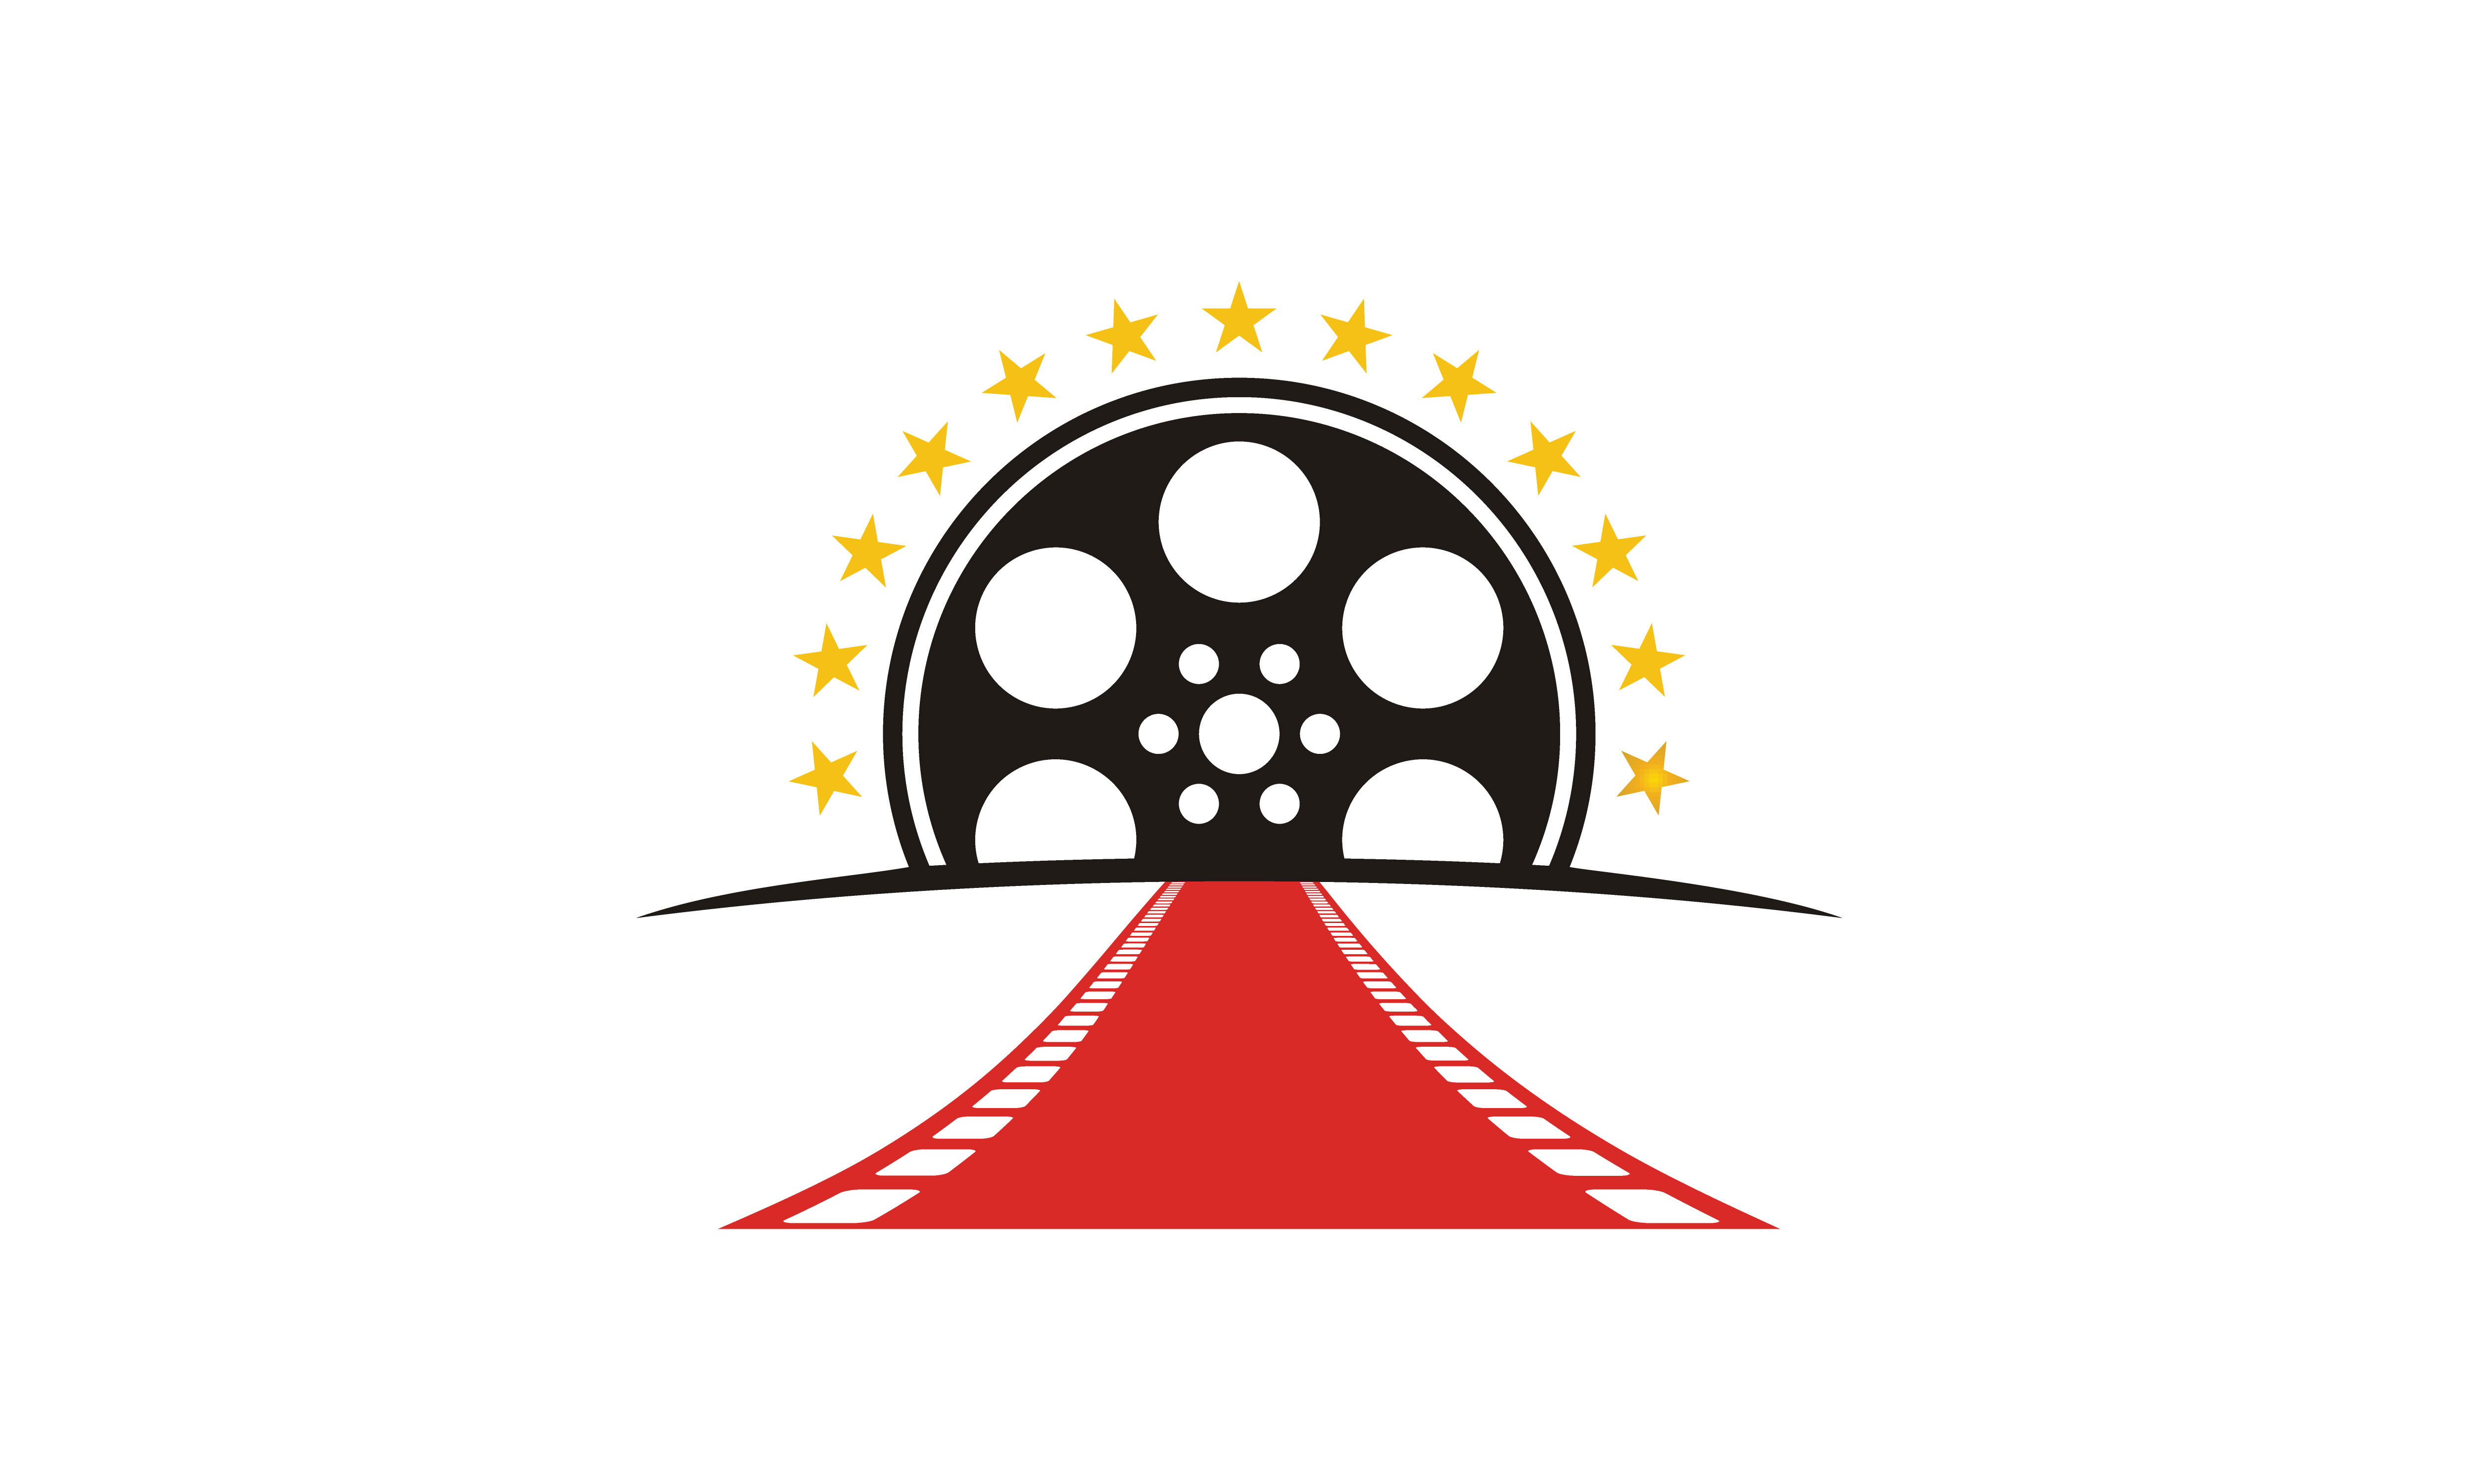 50+ Outstanding Film Logo Designs for Inspiration - Hative